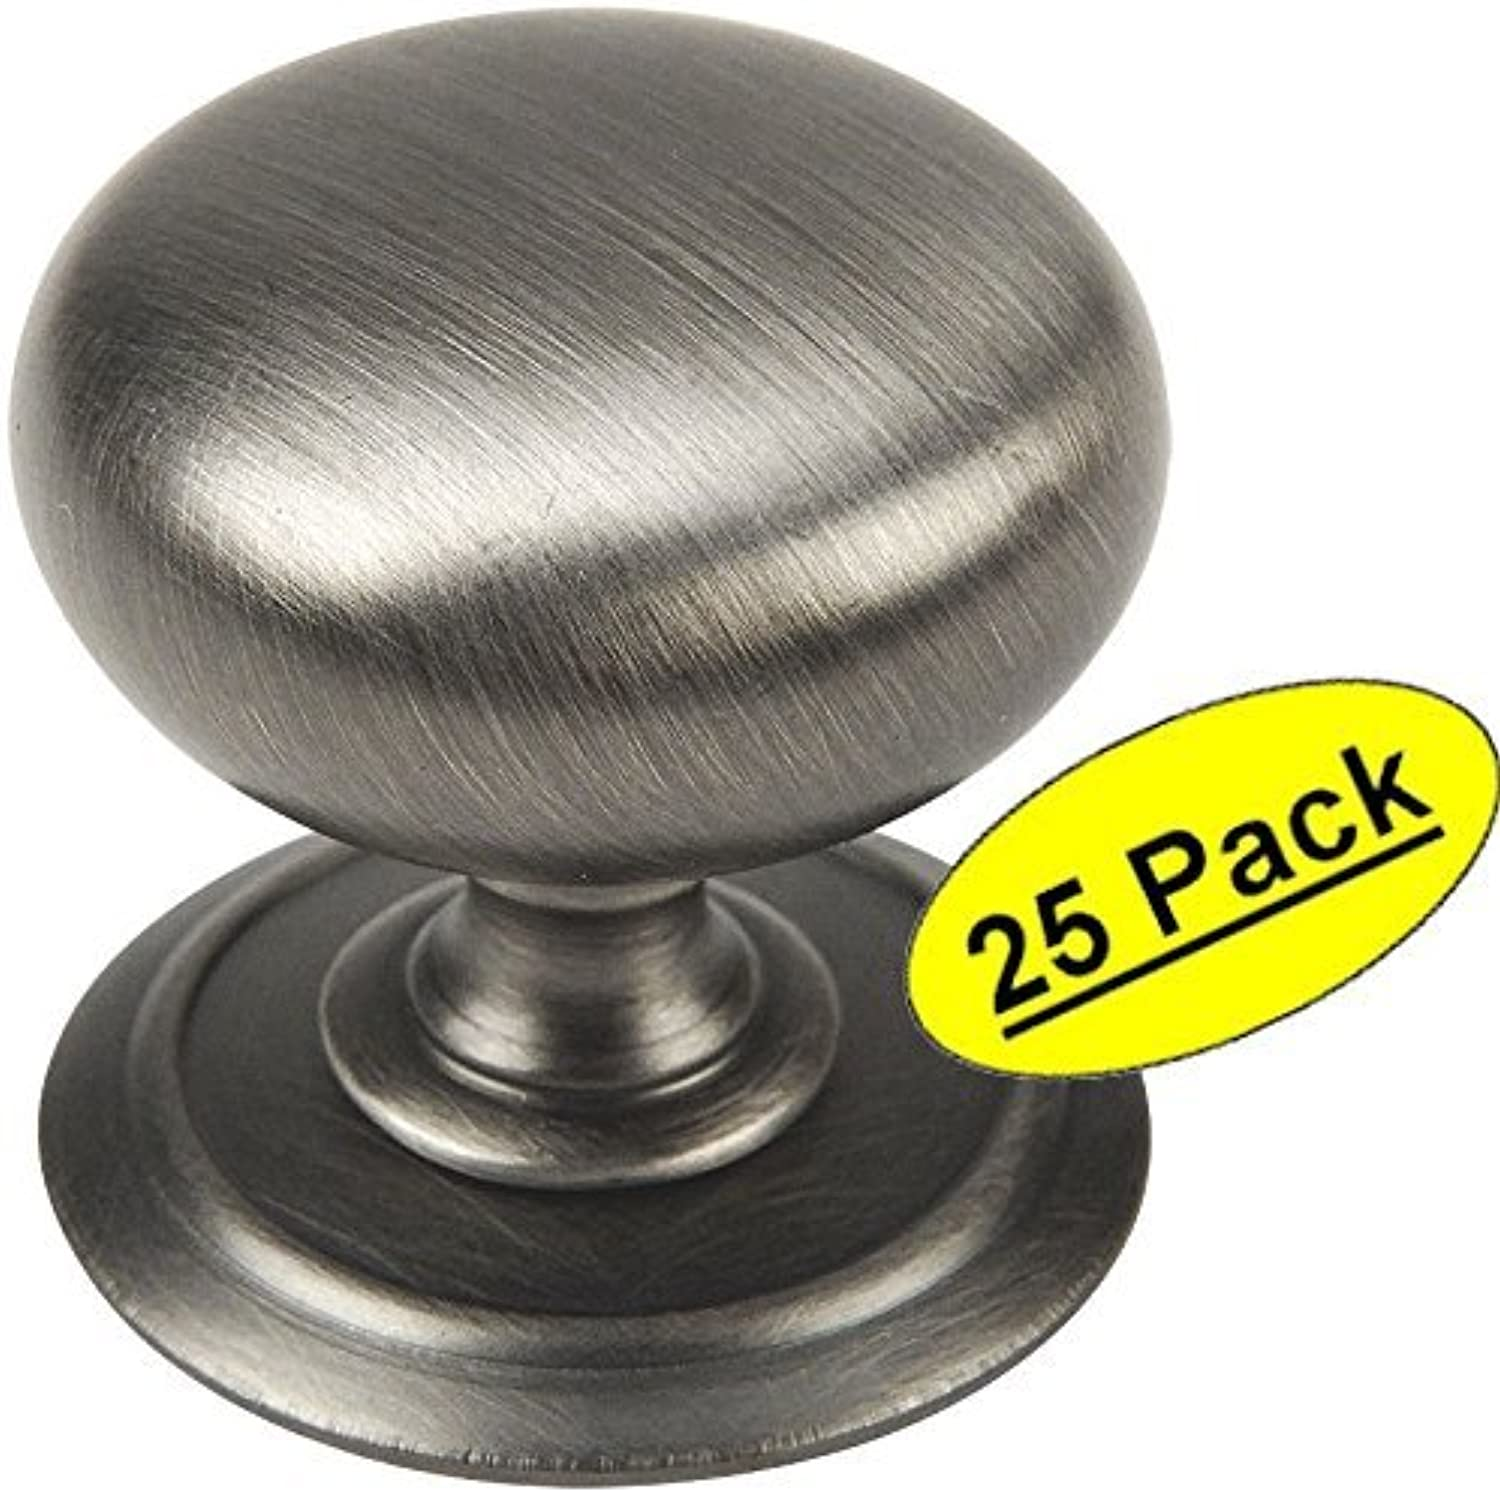 Cosmas 6542AS Antique Silver Round Cabinet Hardware Knob w  Backplate - 1-1 4  Diameter - 25 Pack